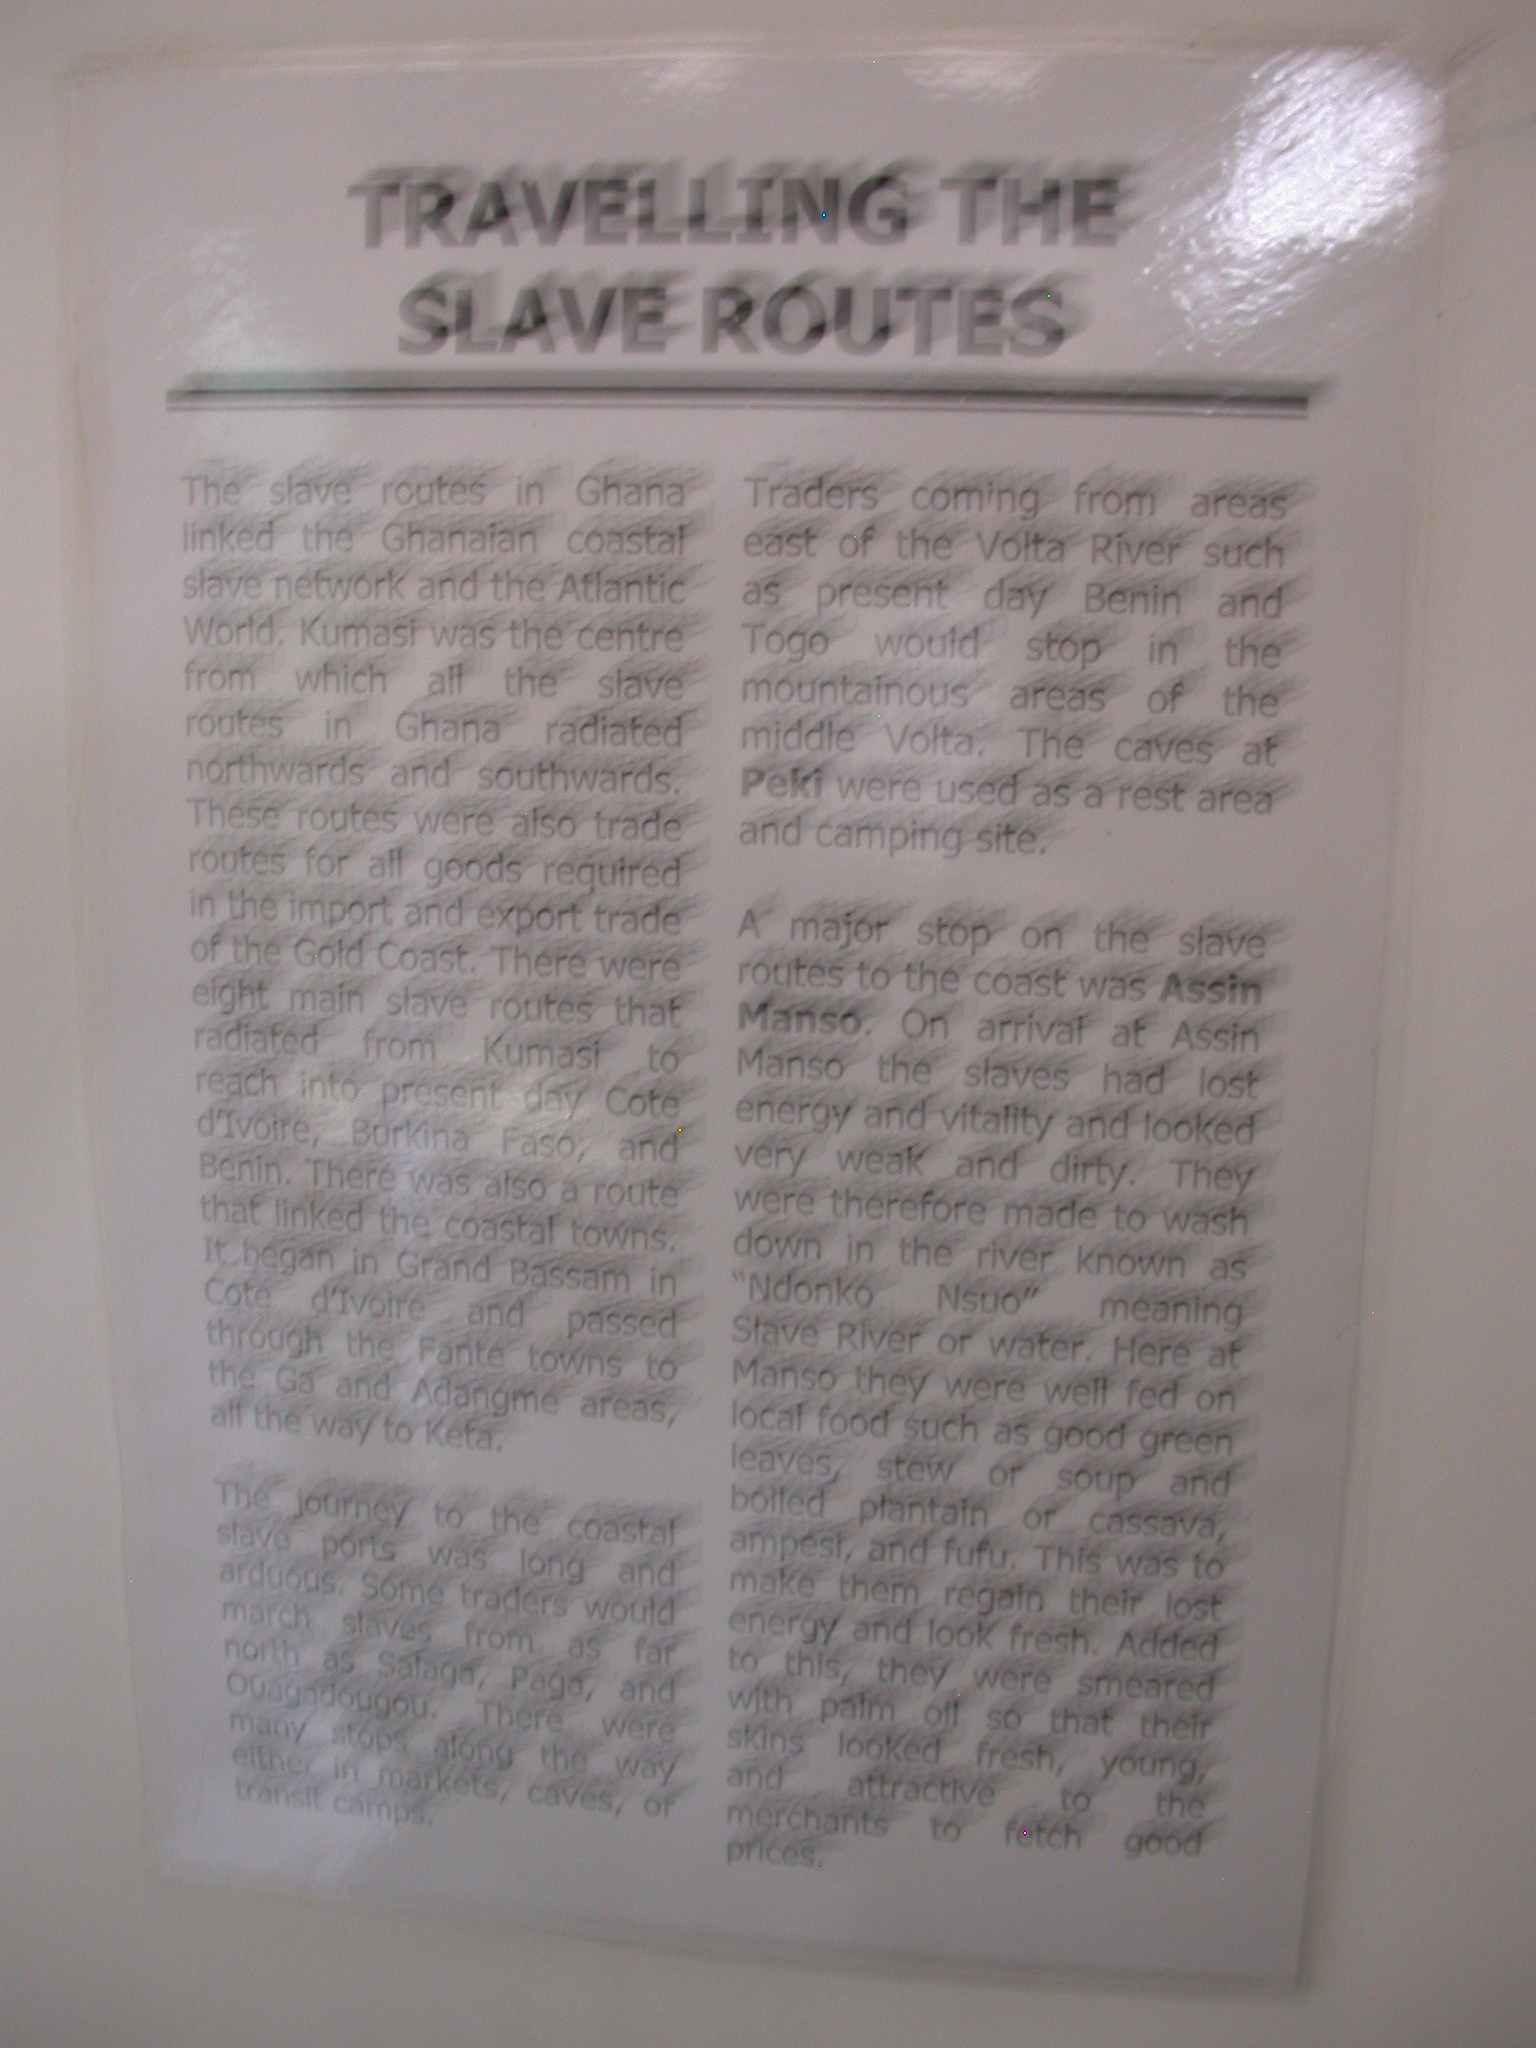 Blurry Description of Traveling the Slave Routes, National Museum, Accra, Ghana